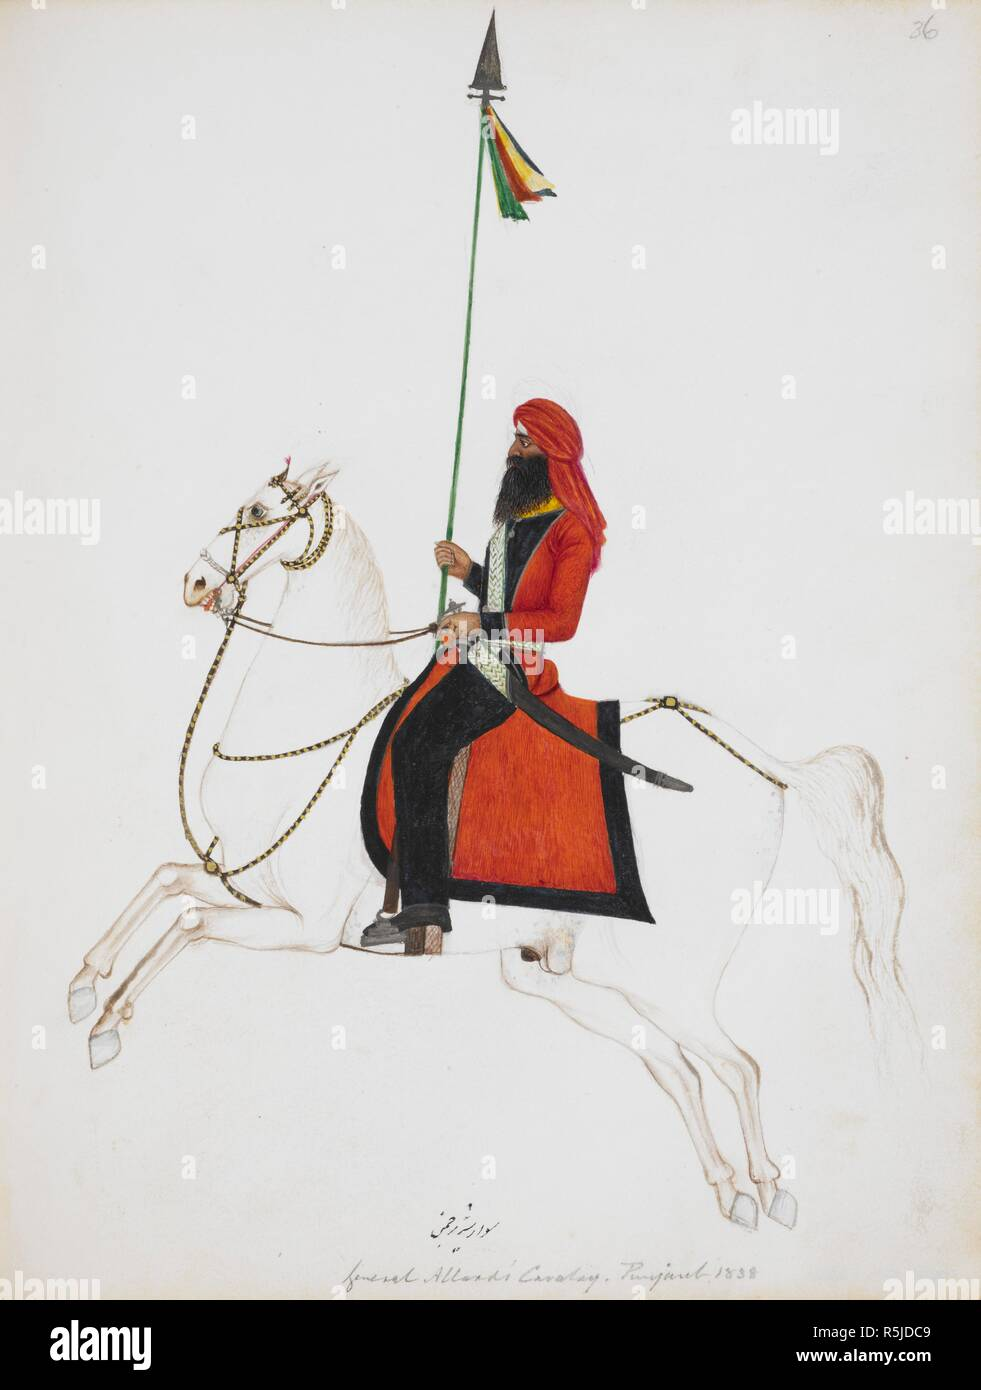 Cavalryman mounted on a white horse and carrying a lance with pennant. 1838 - 1839 Punjab style. Pencil watercolour. Inscribed in Persian characters:' Sawar i sher rajiman' (Trooper of the lion regiment); in English: 'General Allard's Cavalry, Punjaub. 1838.' Note: General Allard was a French adventurer who trained Ranjit Singh's cavalry from 1822-39. Source: Add.Or.1382. Language: Persian. Author: ANON. - Stock Image